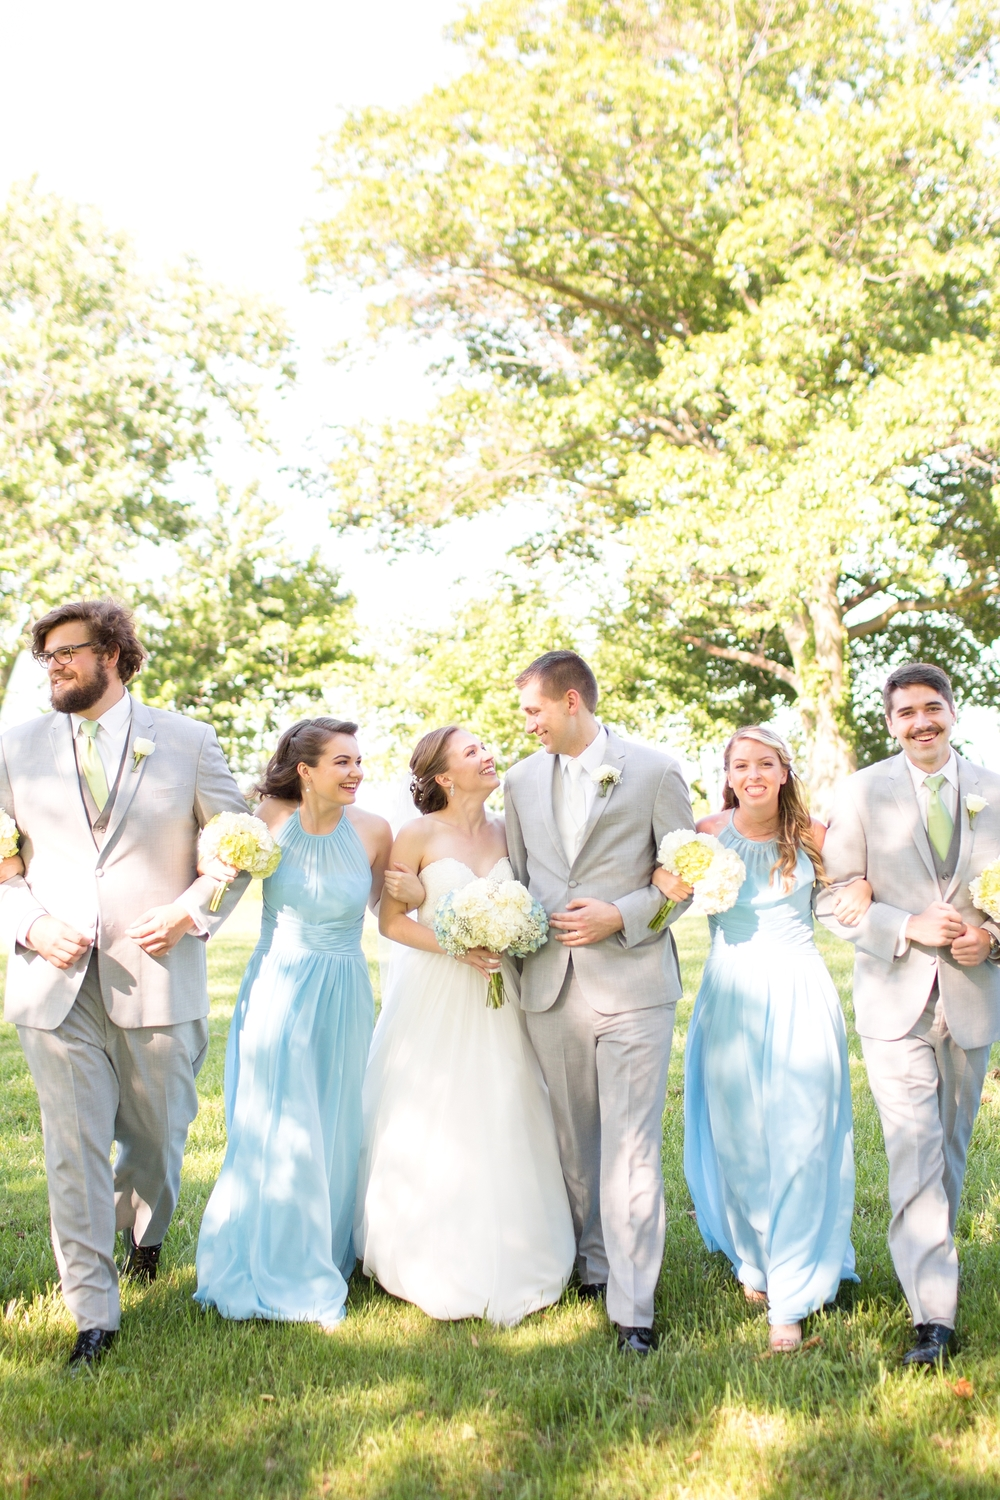 Mroz 2-Bridal Party-545_anna grace photography top of the bay maryland wedding photographer photo.jpg